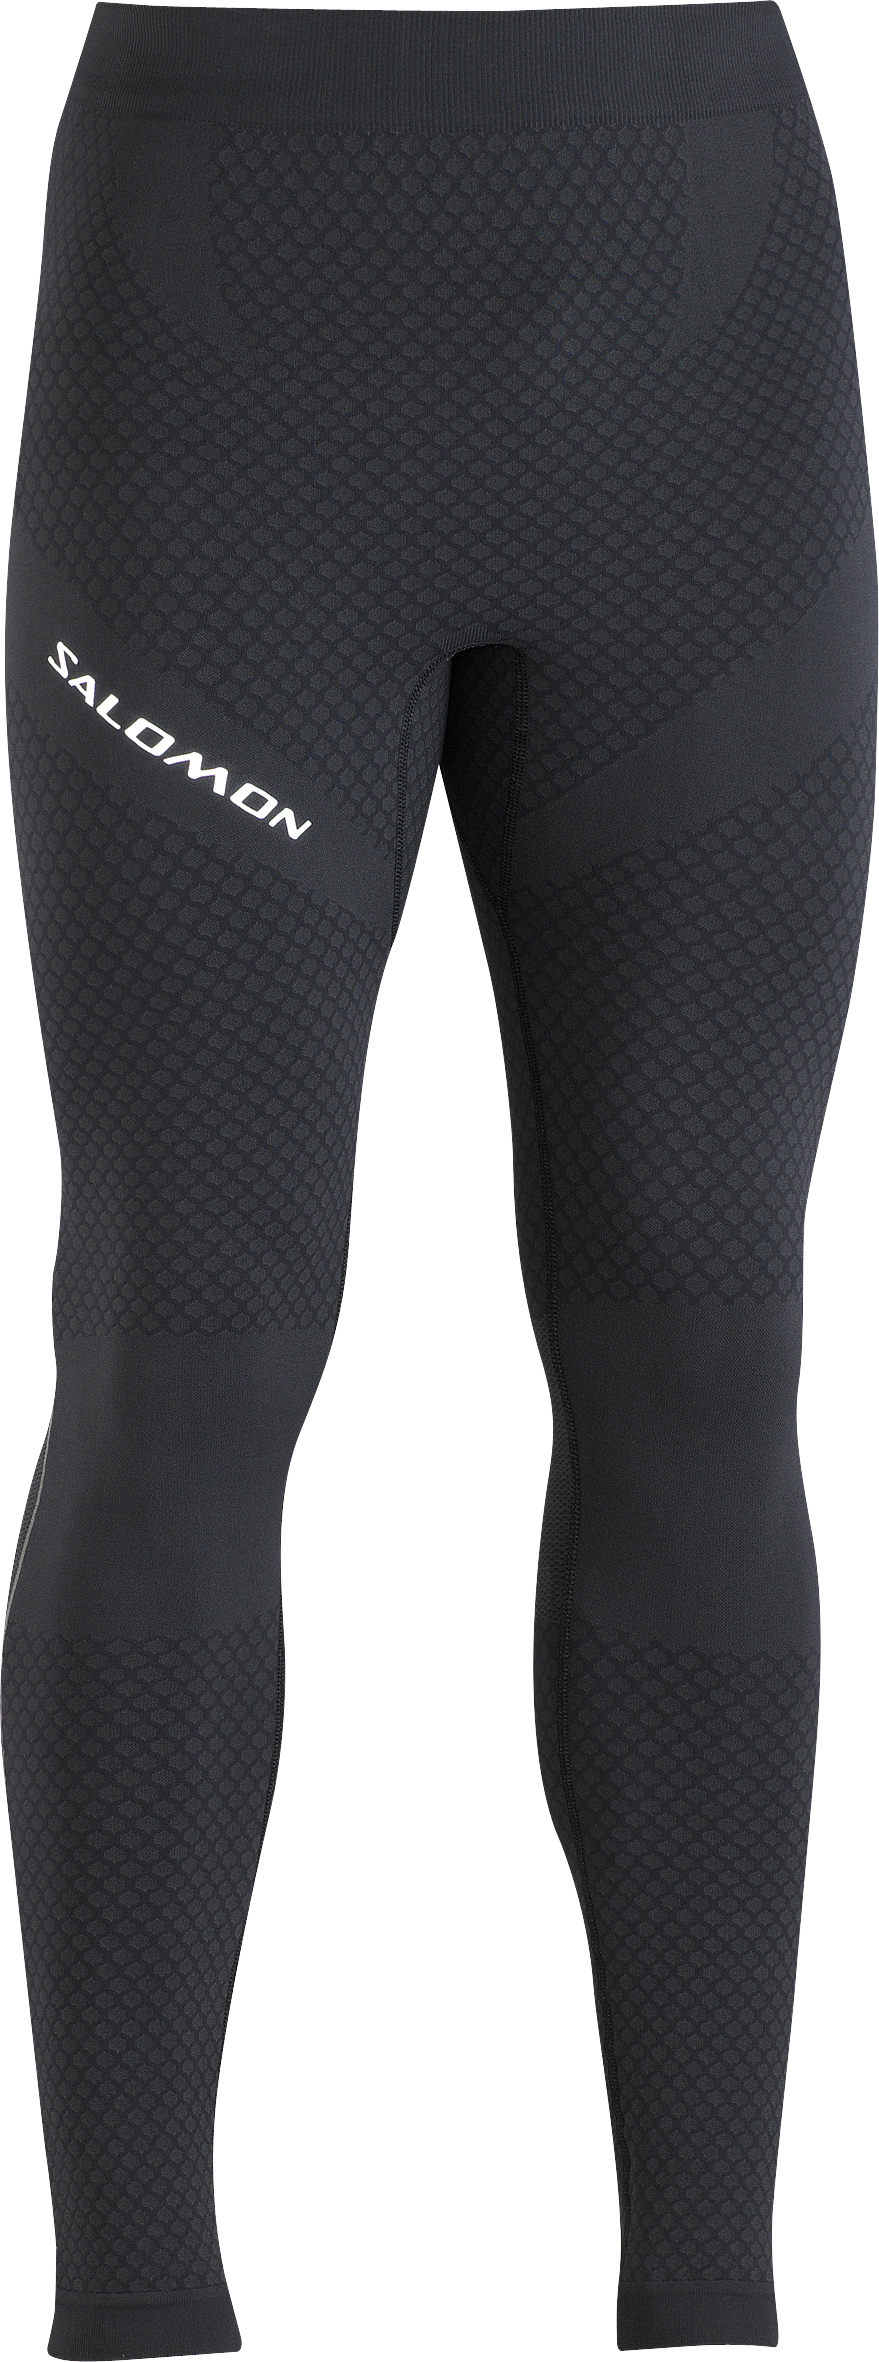 LAYOUT_Salomon_Exo_Motion_Tight_M_Black_ExoSensifit_hi_68399